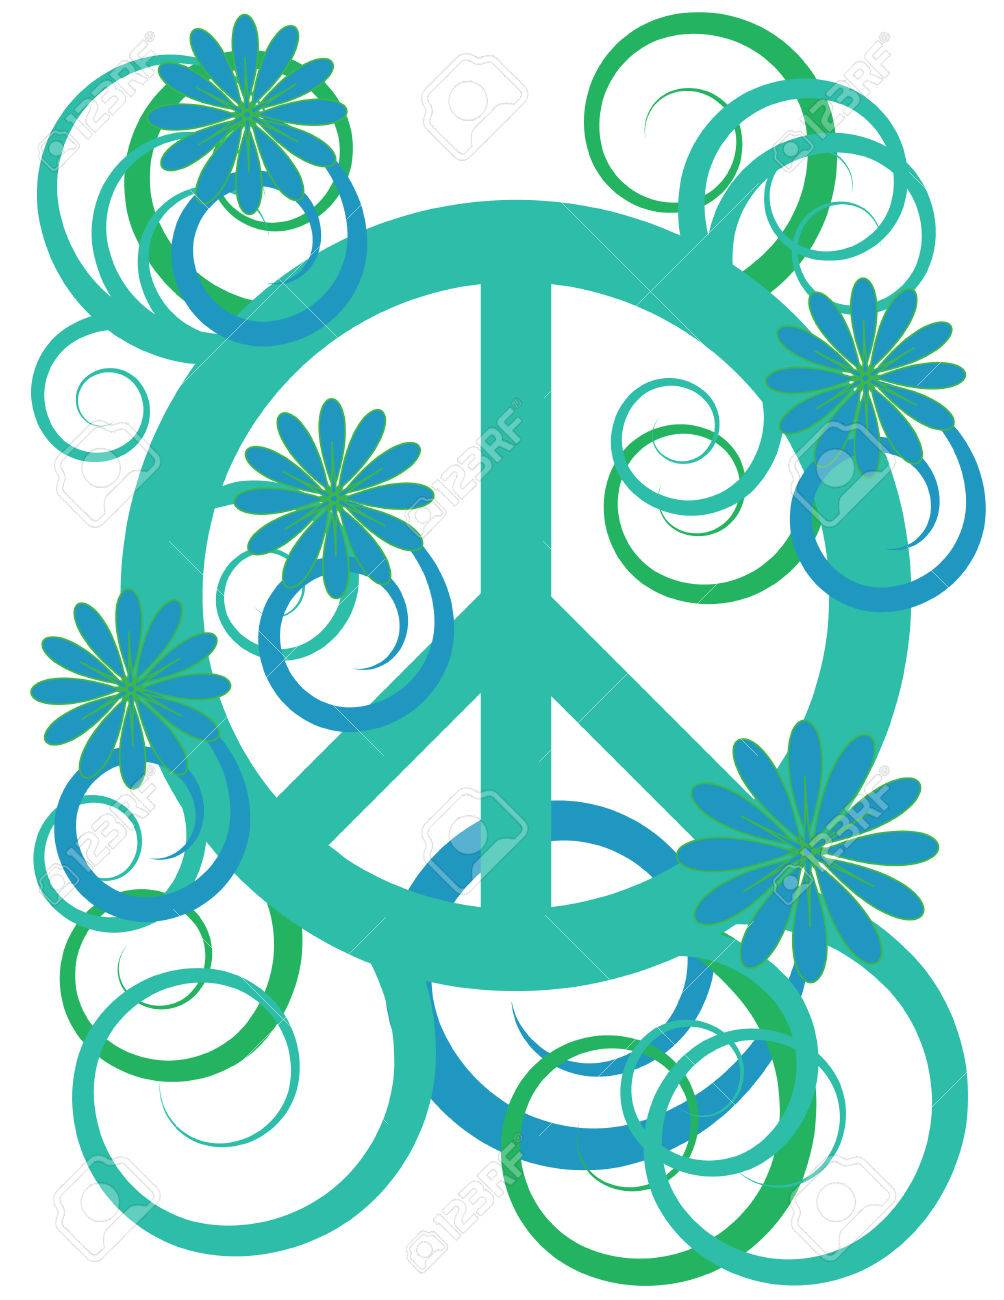 Flower Power Peace Sign Royalty Free Cliparts Vectors And Stock Illustration Image 6078753